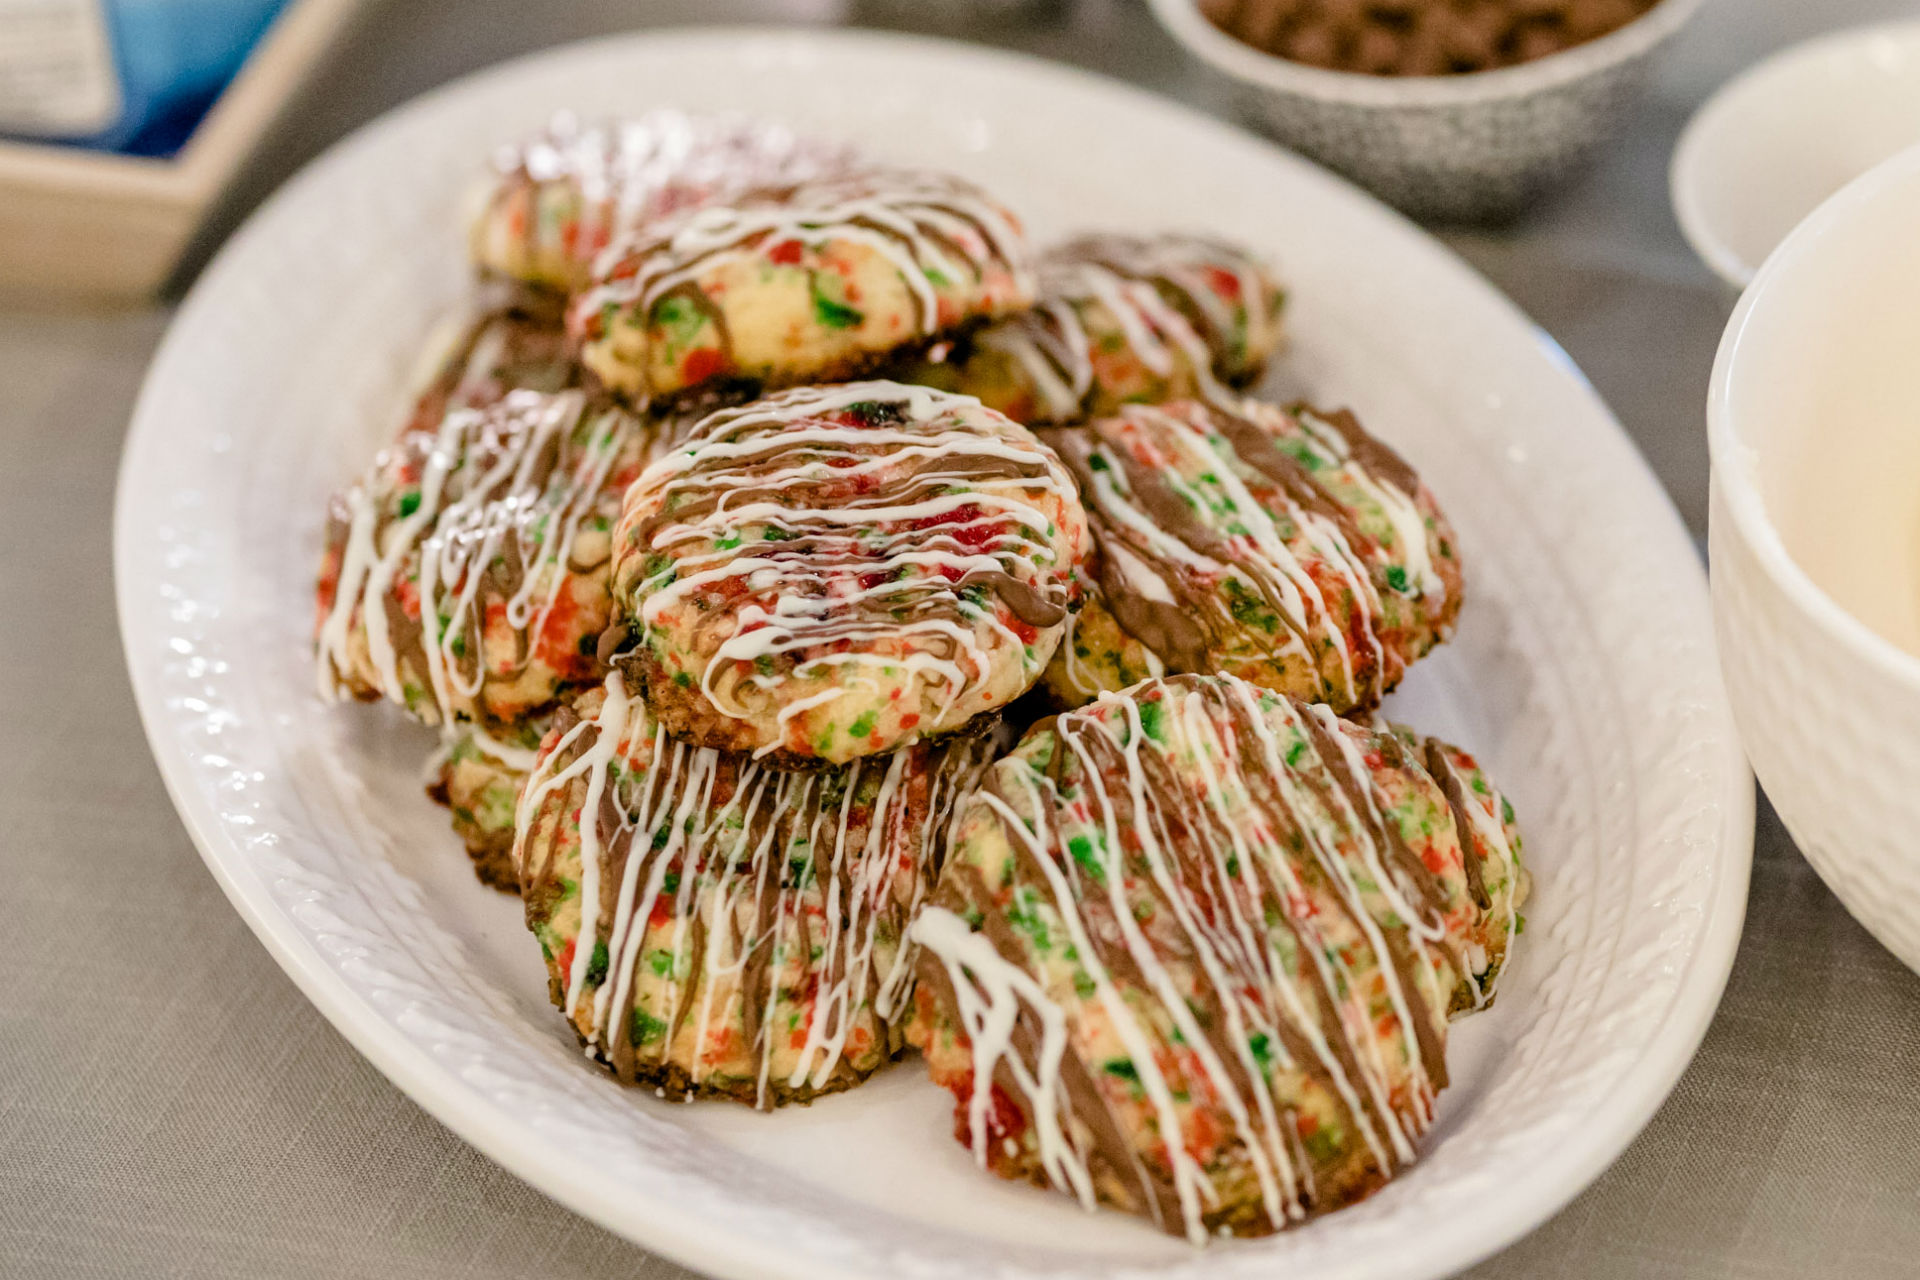 plate of cookies drizzled with chocolate